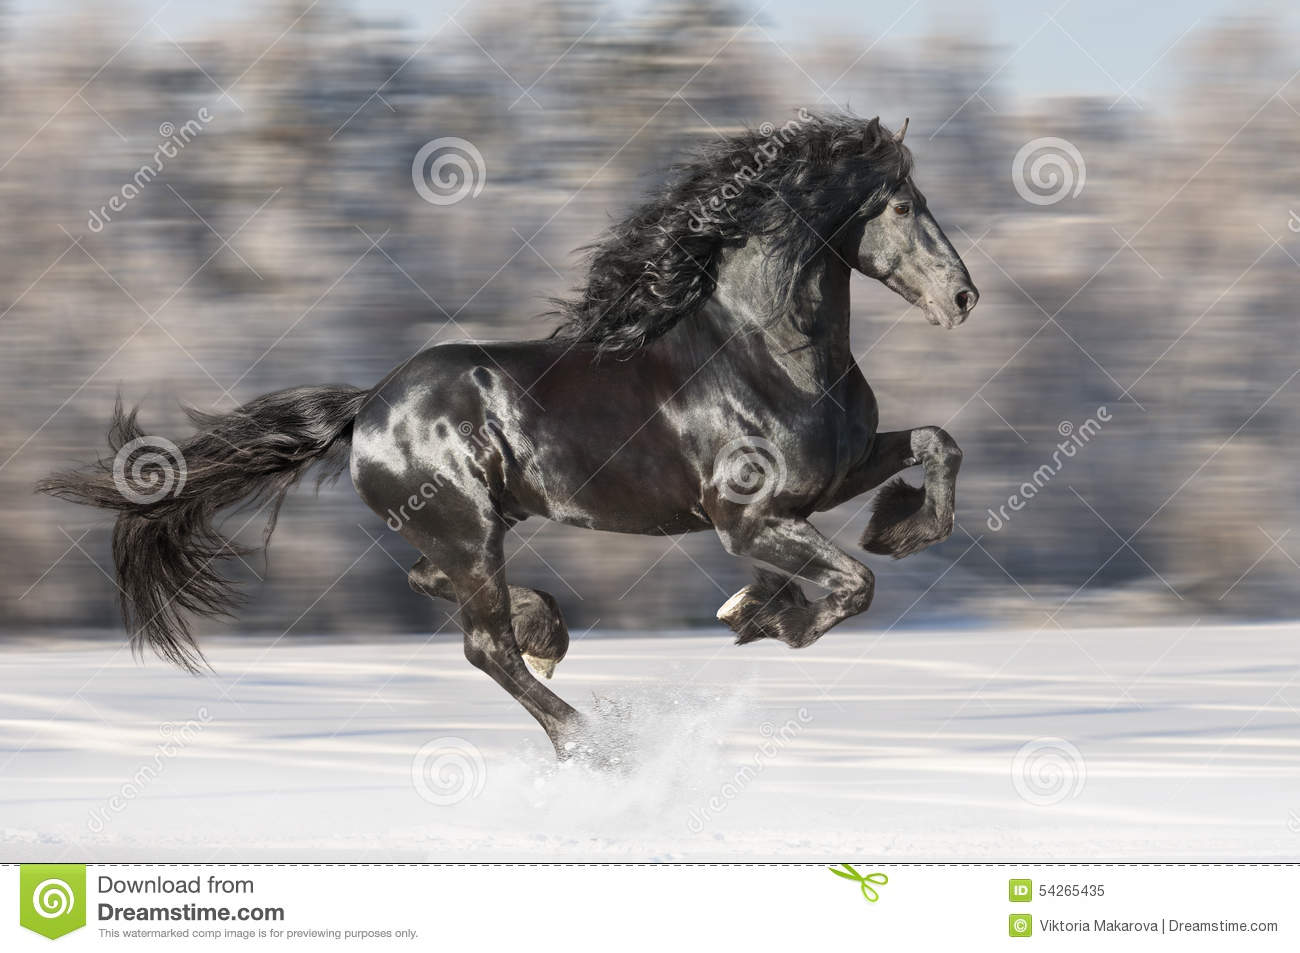 Black Friesian horse runs gallop on blurred winter background